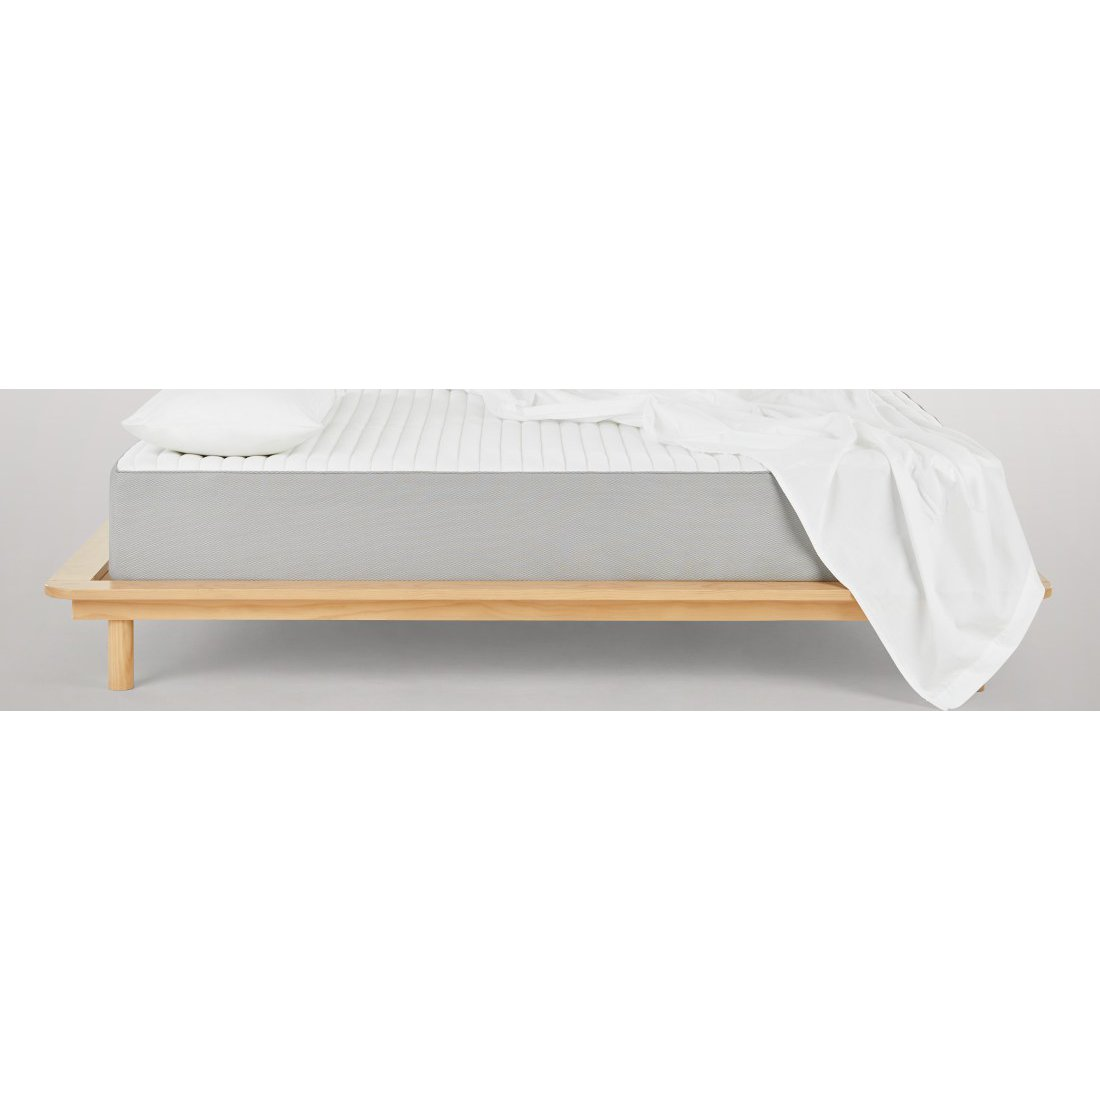 image-The Hybrid One, Mattress, Double